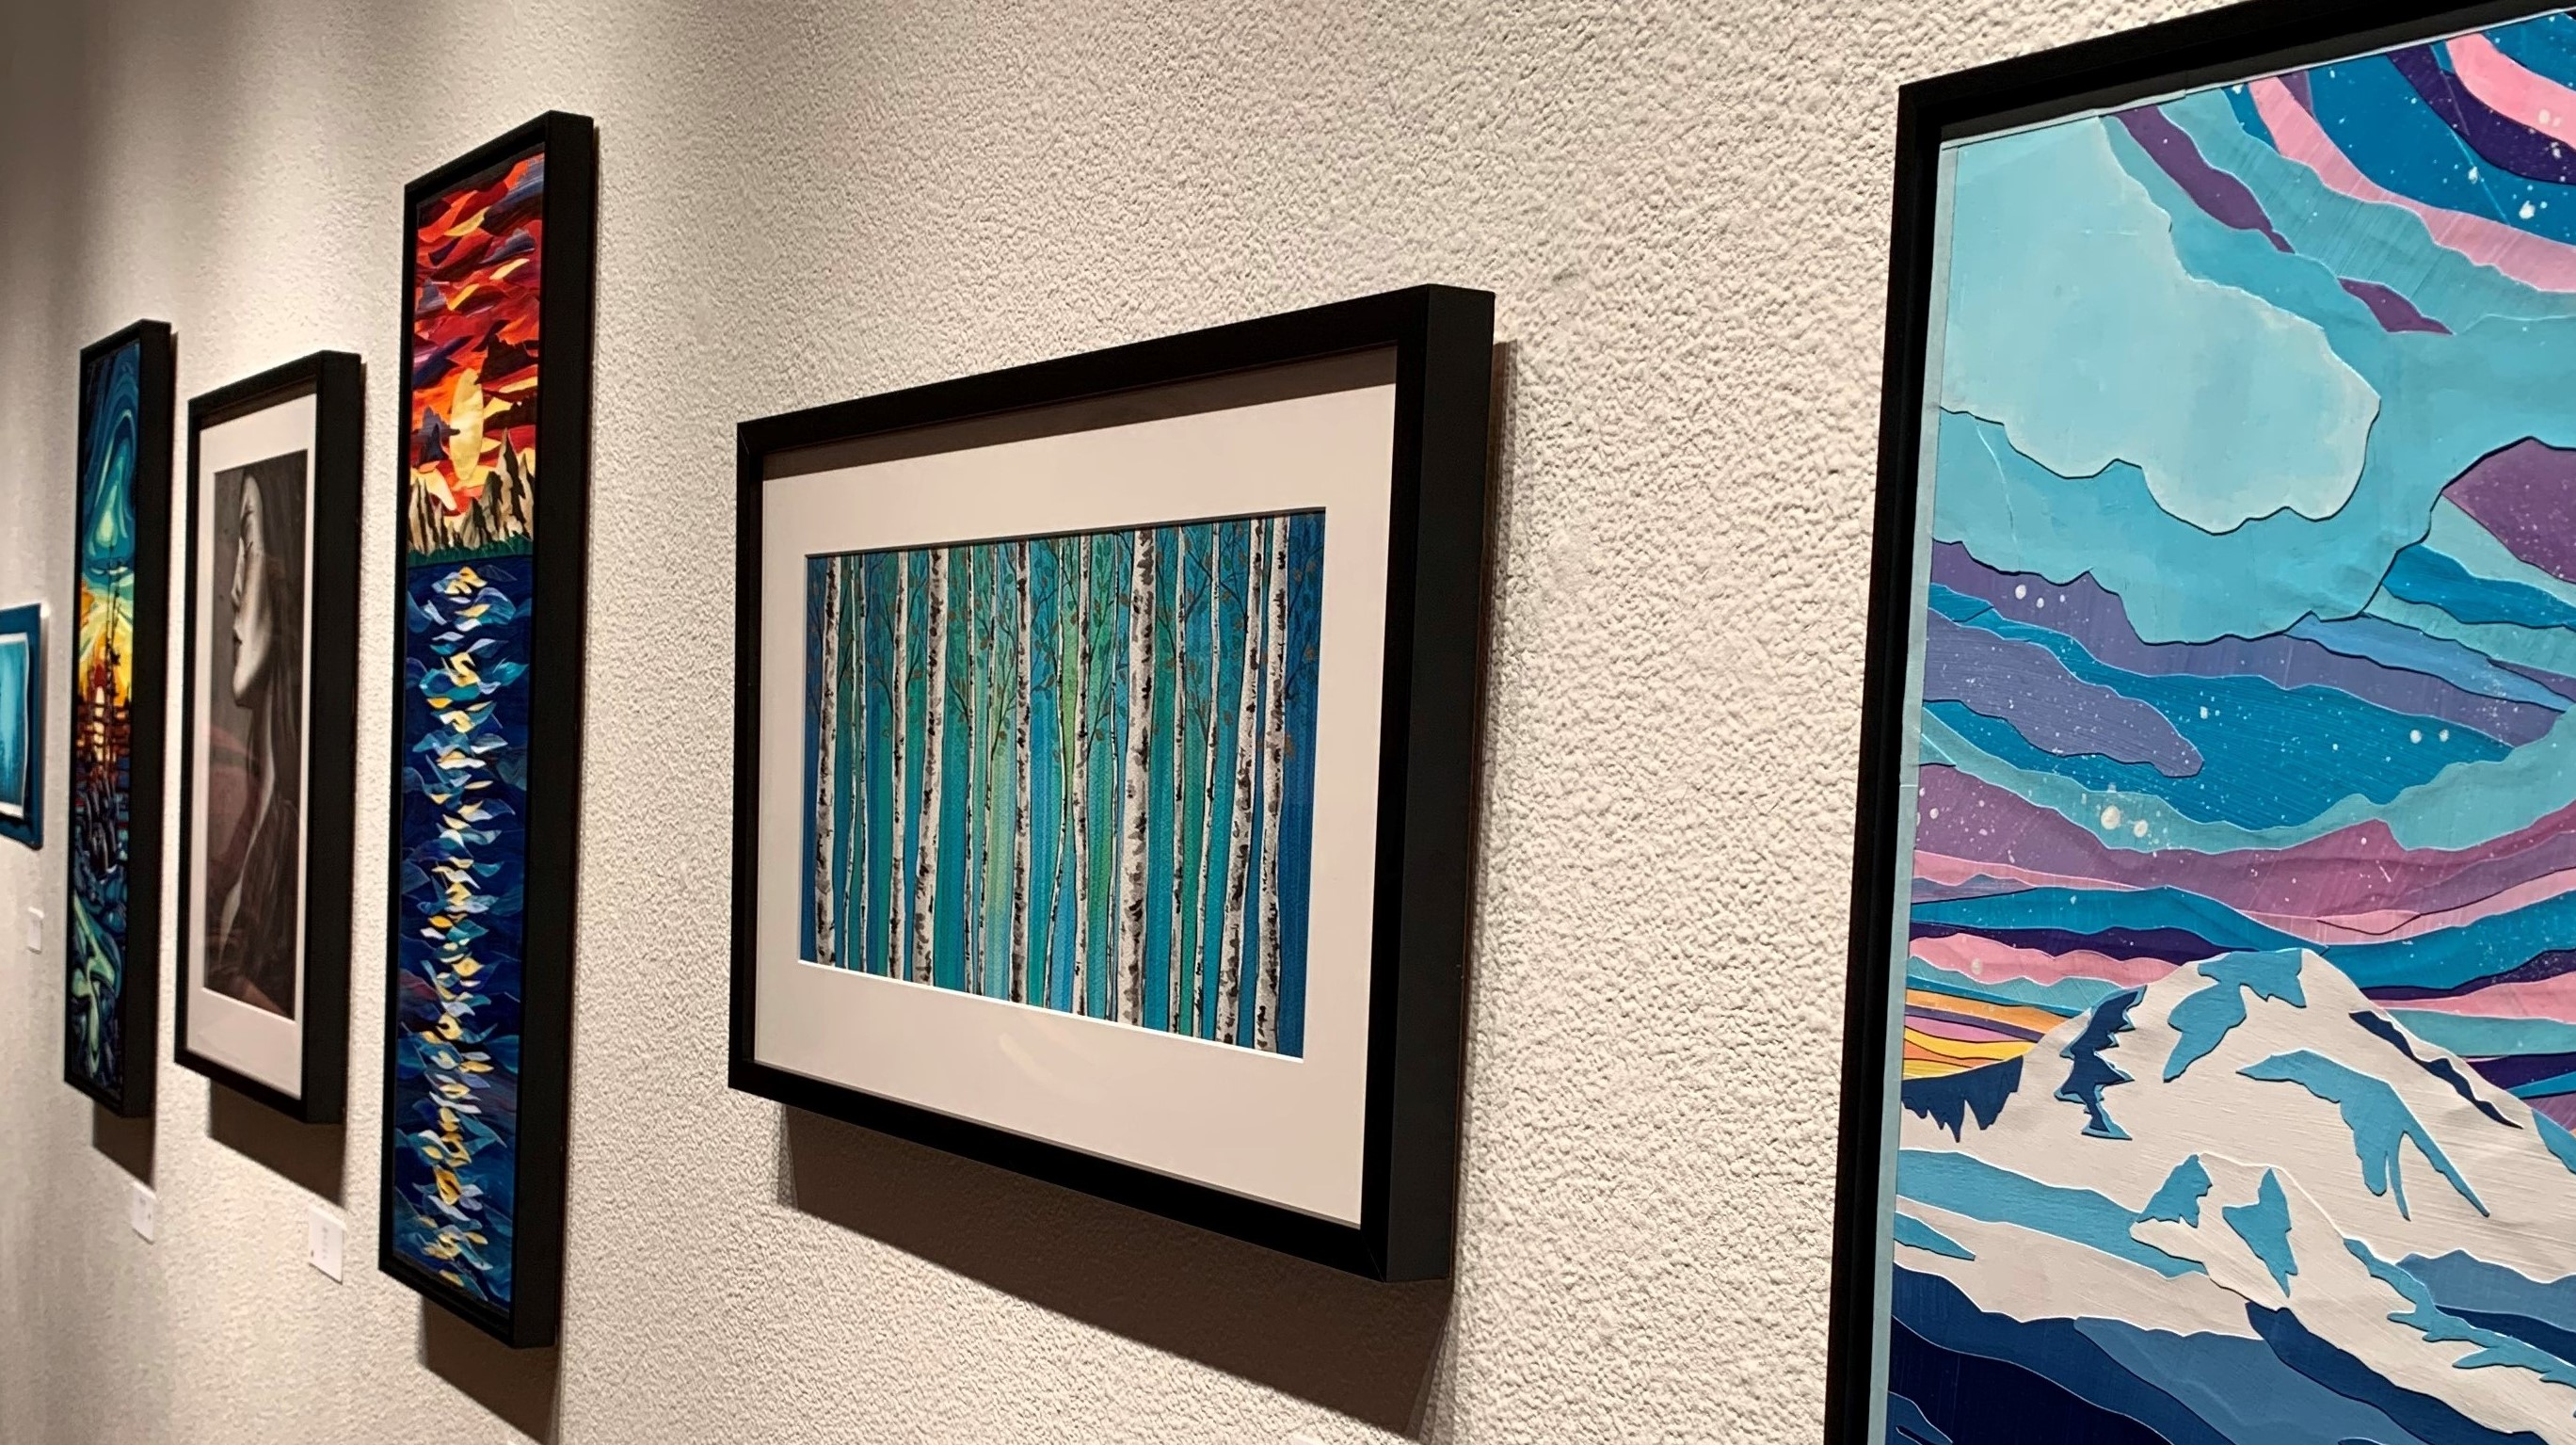 """""""The Space Between"""": A Solo Exhibit by Lori Orlowski 11/01/2019"""